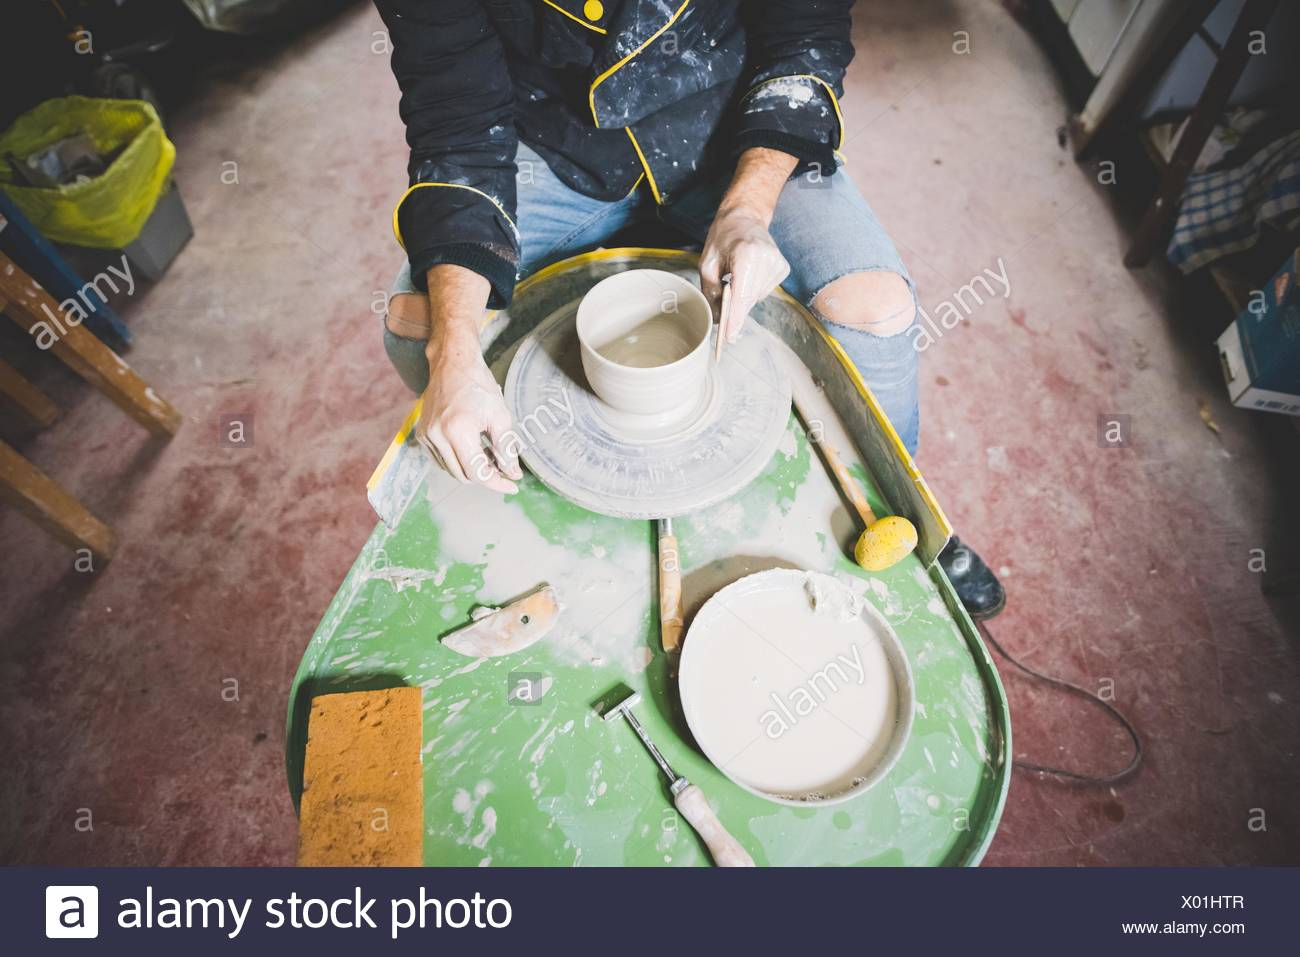 High angle view of mid adult man making clay pot on pottery wheel - Stock Image